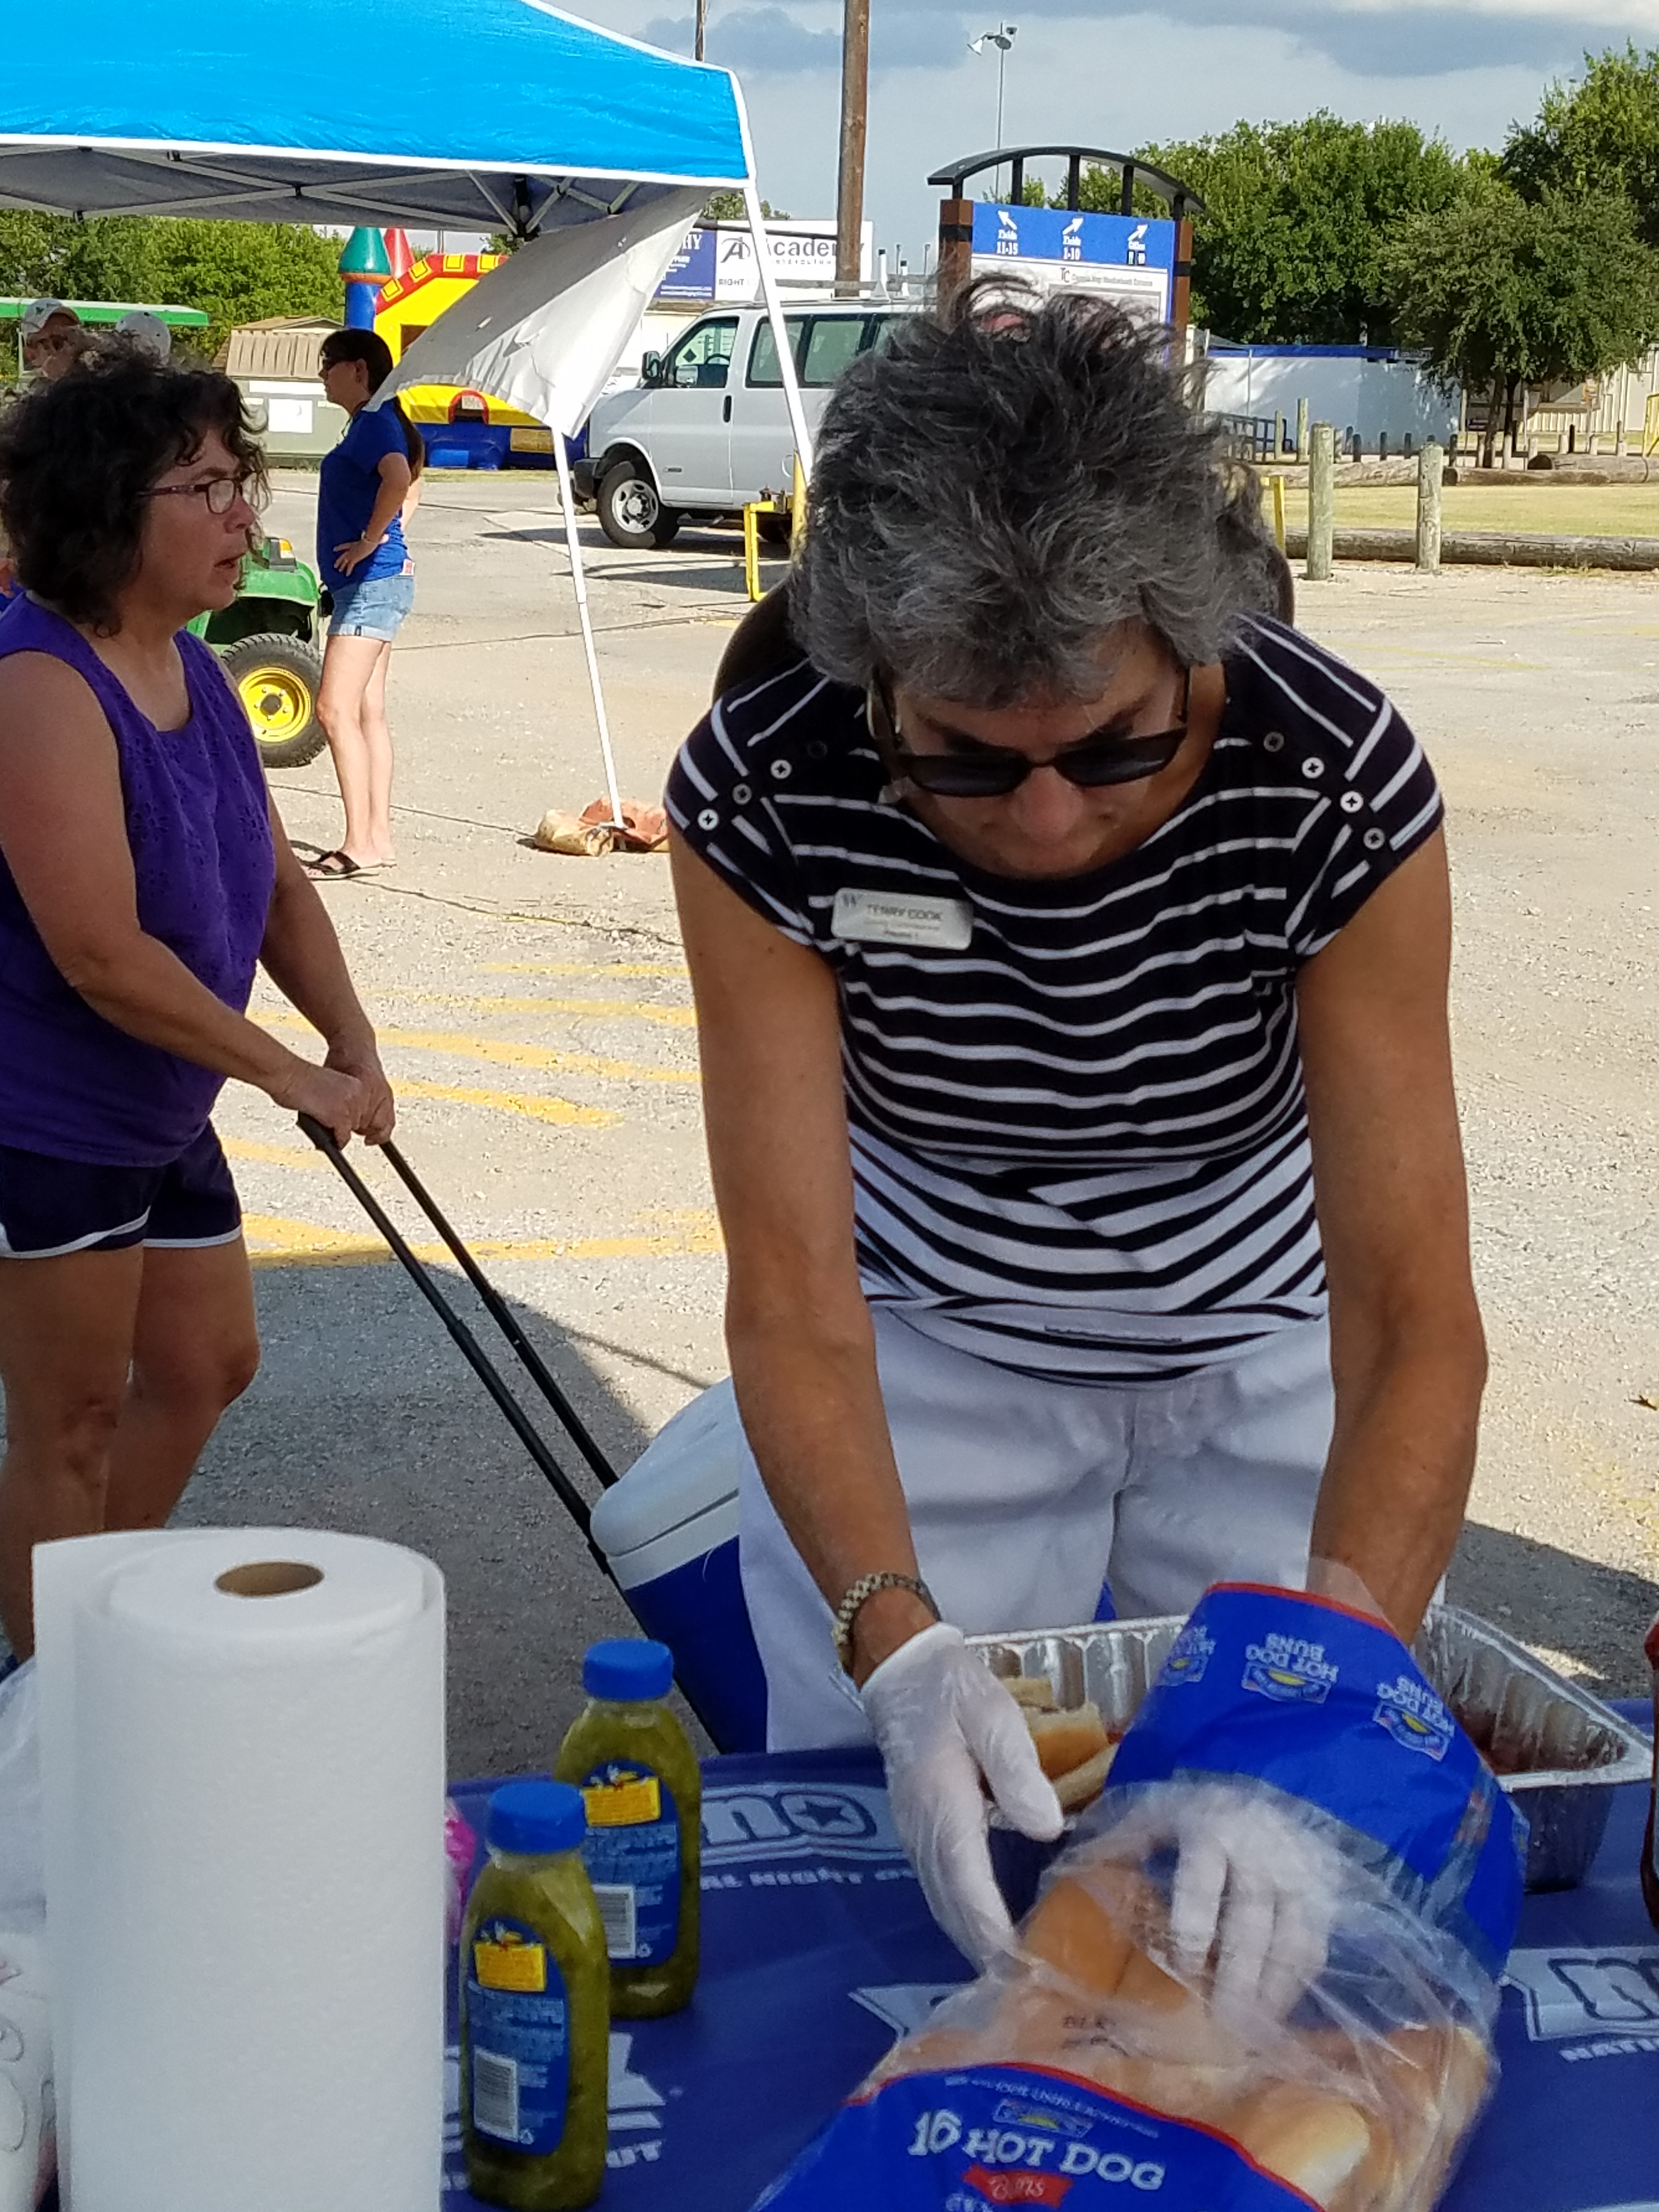 Commissioner Cook is preparing hot dogs to serve the attendees.